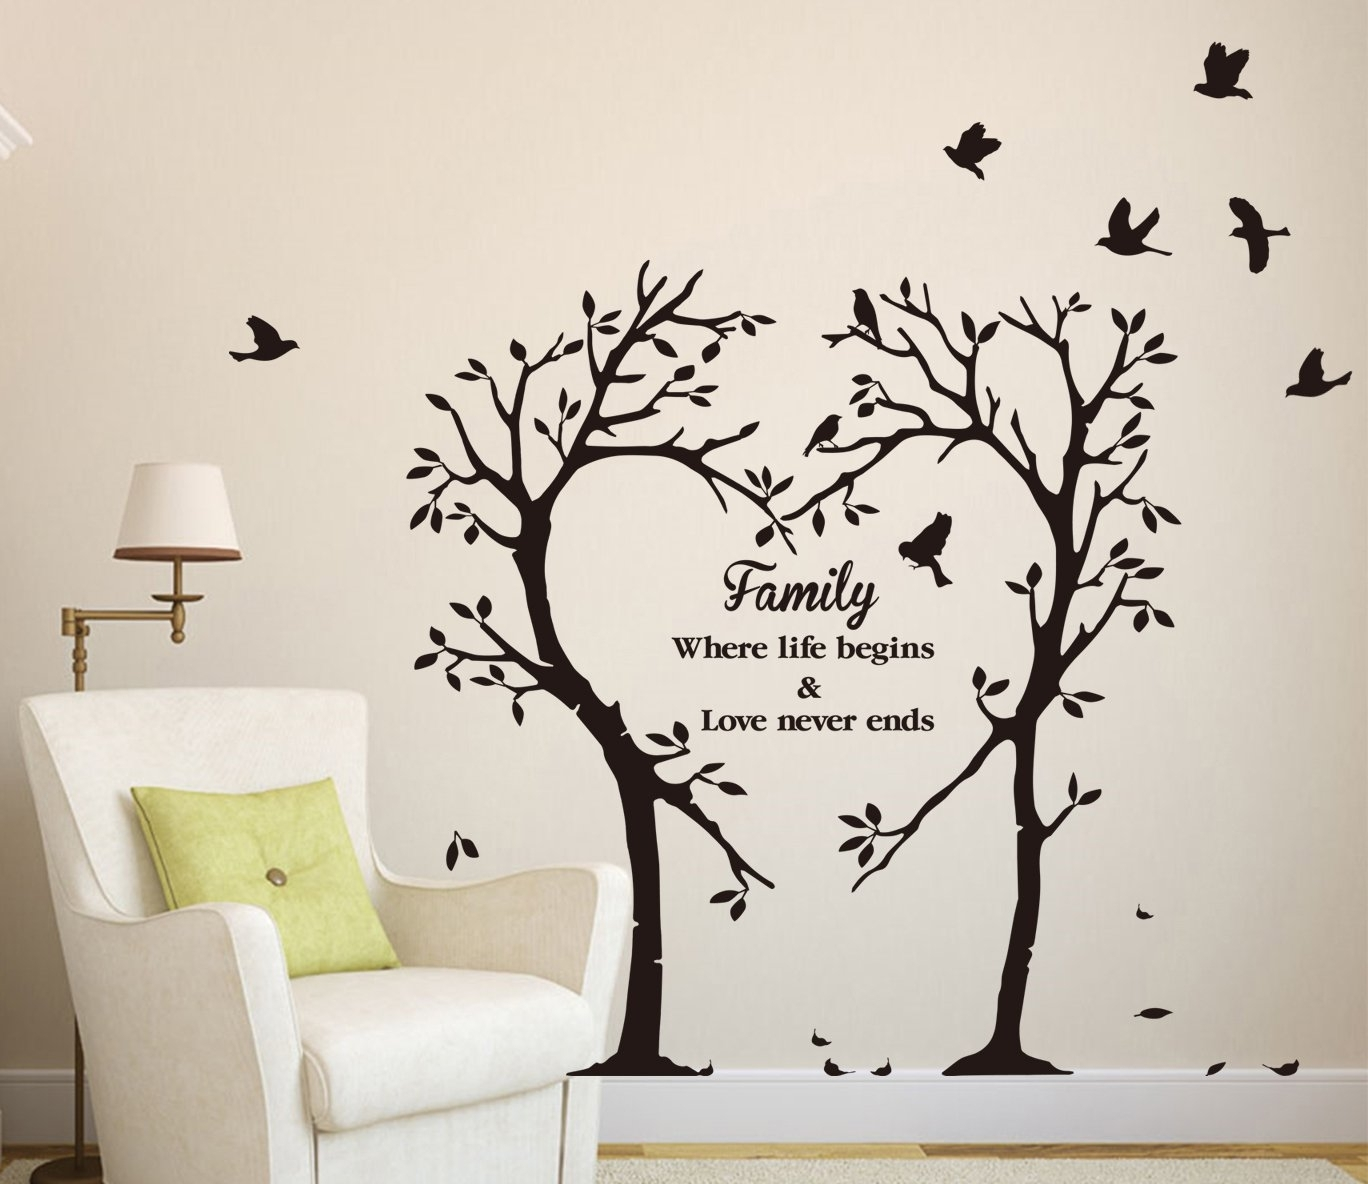 Large Family Inspirational Love Tree Wall Art Sticker, Wall Sticker Throughout Most Recent Tree Wall Art (View 9 of 15)